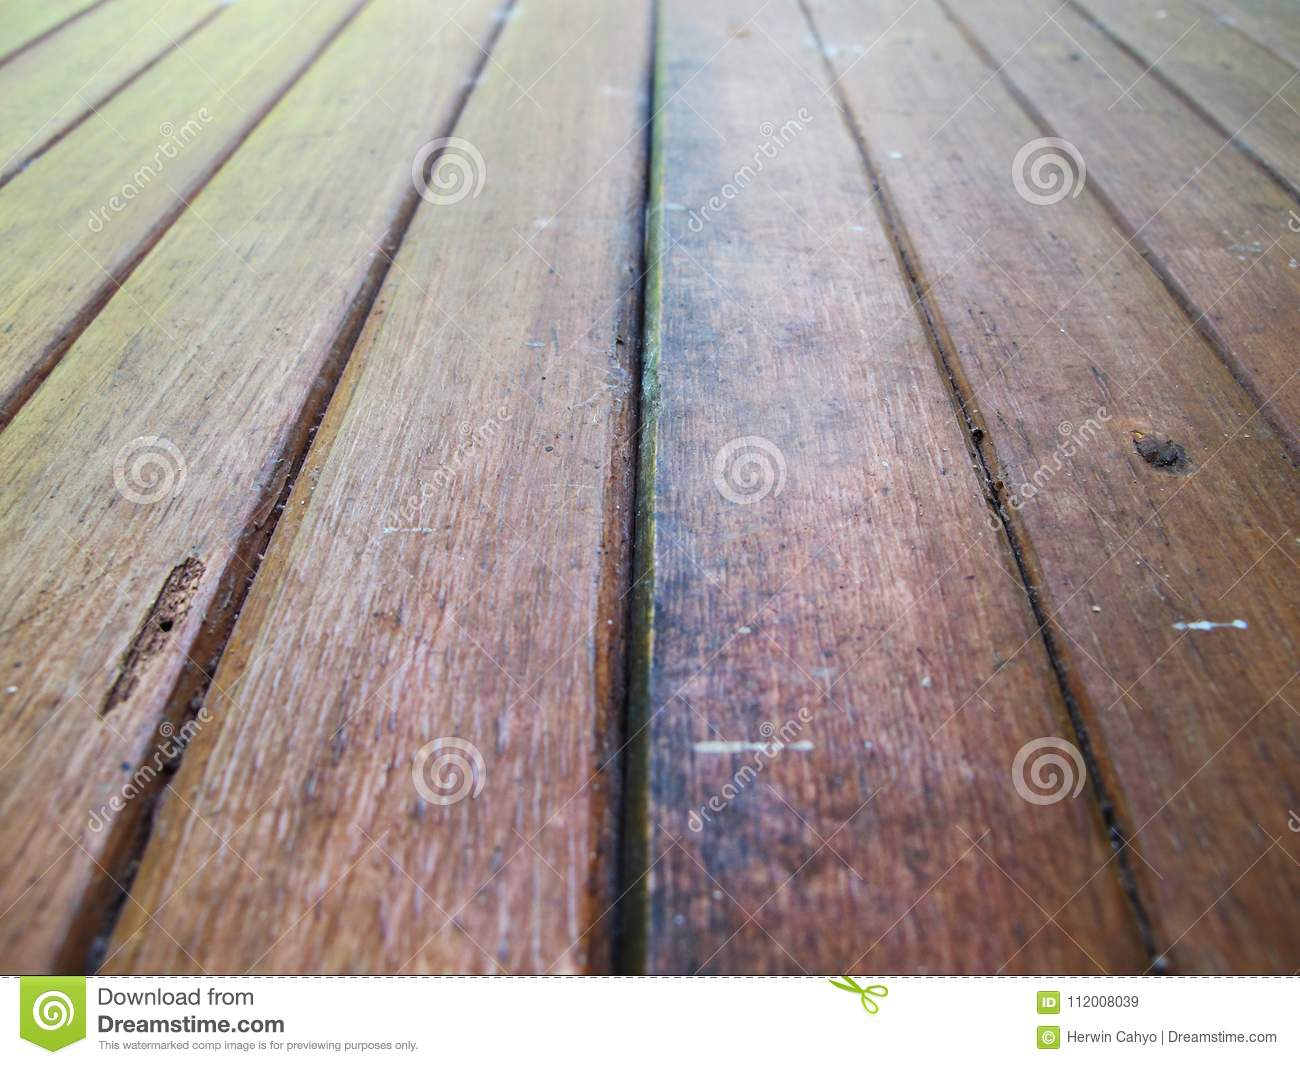 Cool Brown Wood Texture Photography Stock Image - Image of ... - photo#38